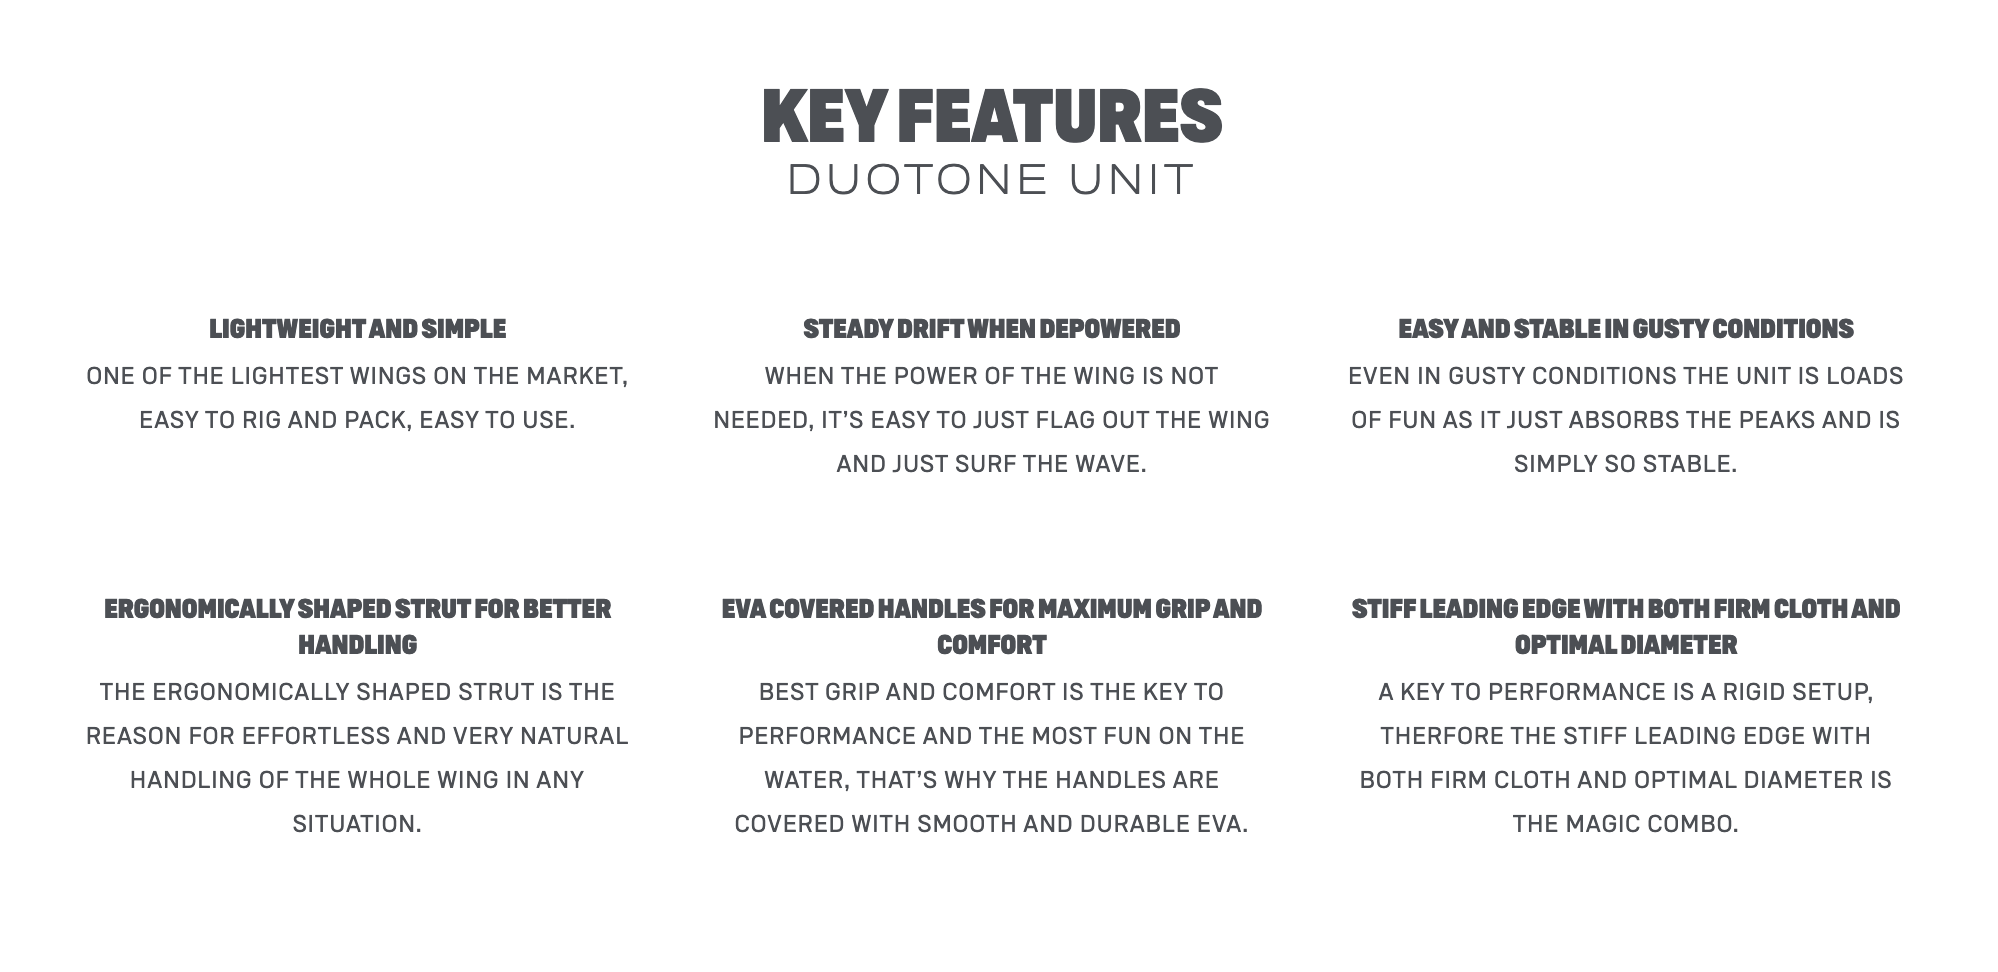 Duotone wing foil Unit 2020/21